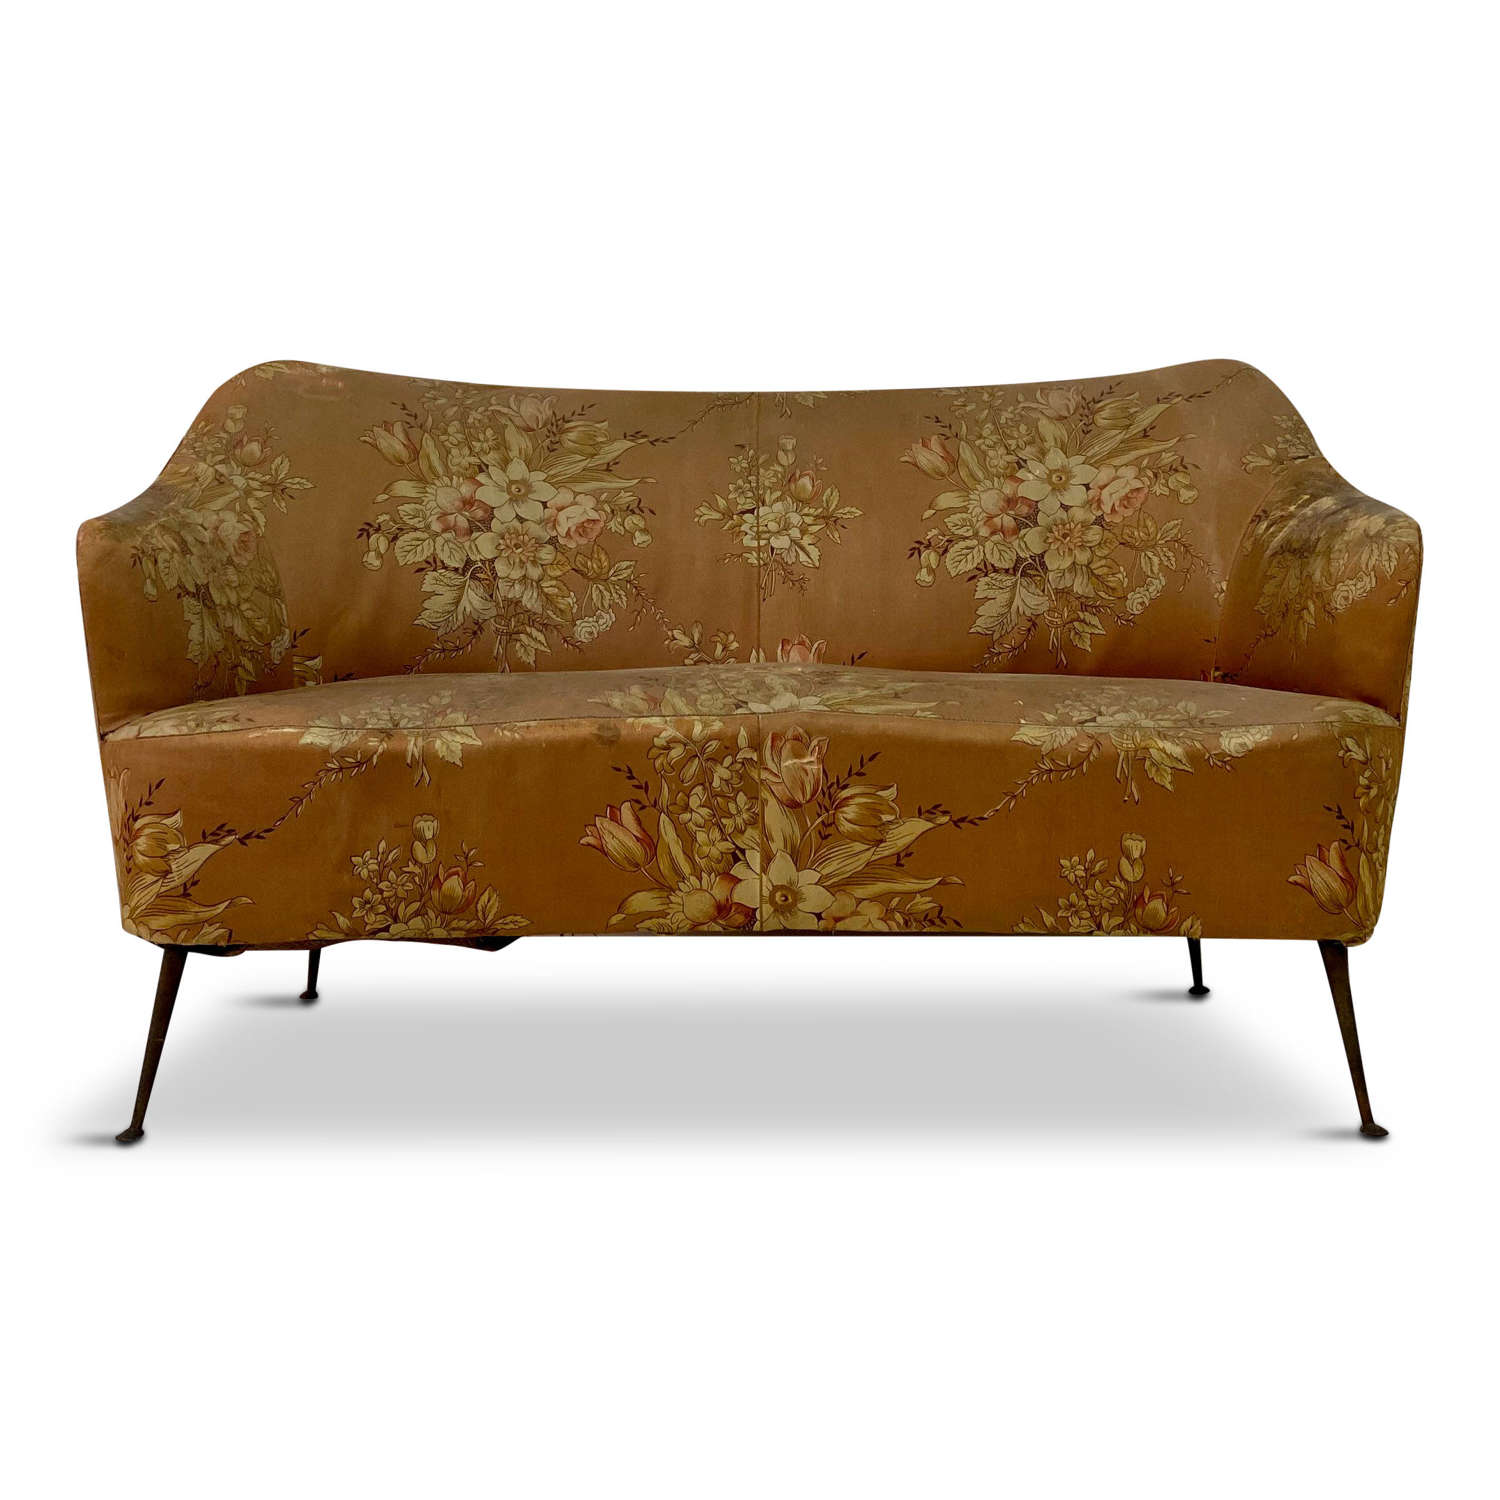 1950s Italian Sofa on Brass Legs